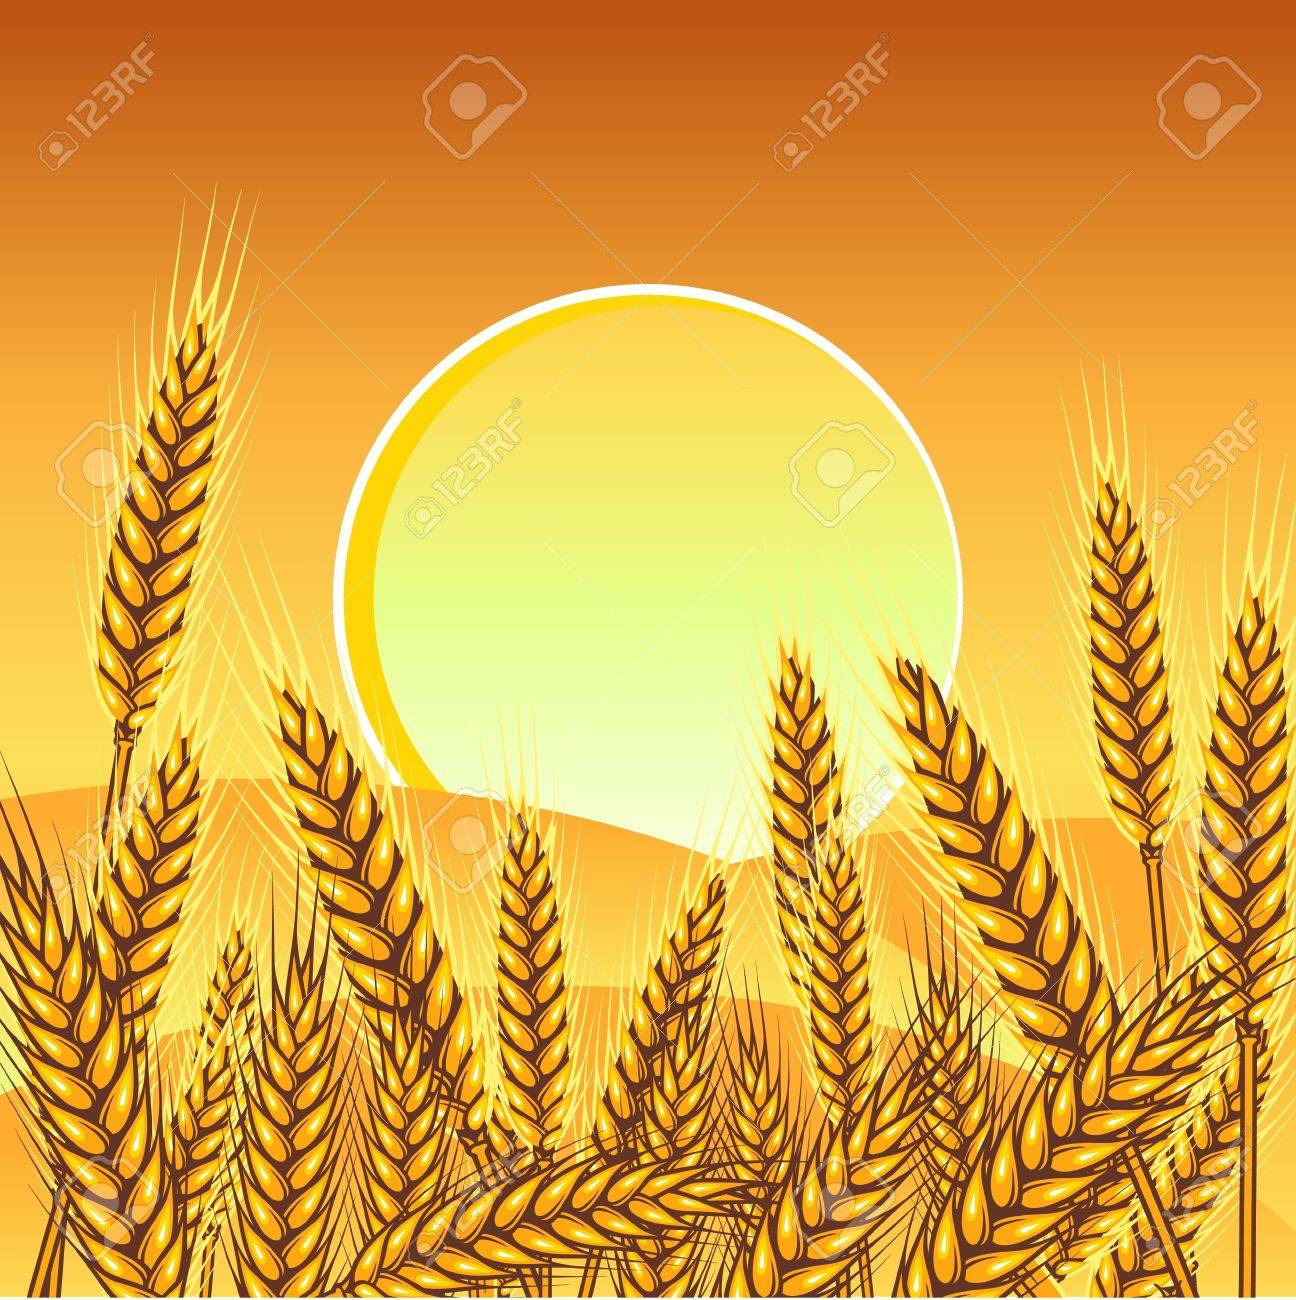 Background with ripe yellow wheat ears, vector illustration Stock Vector - 13288485